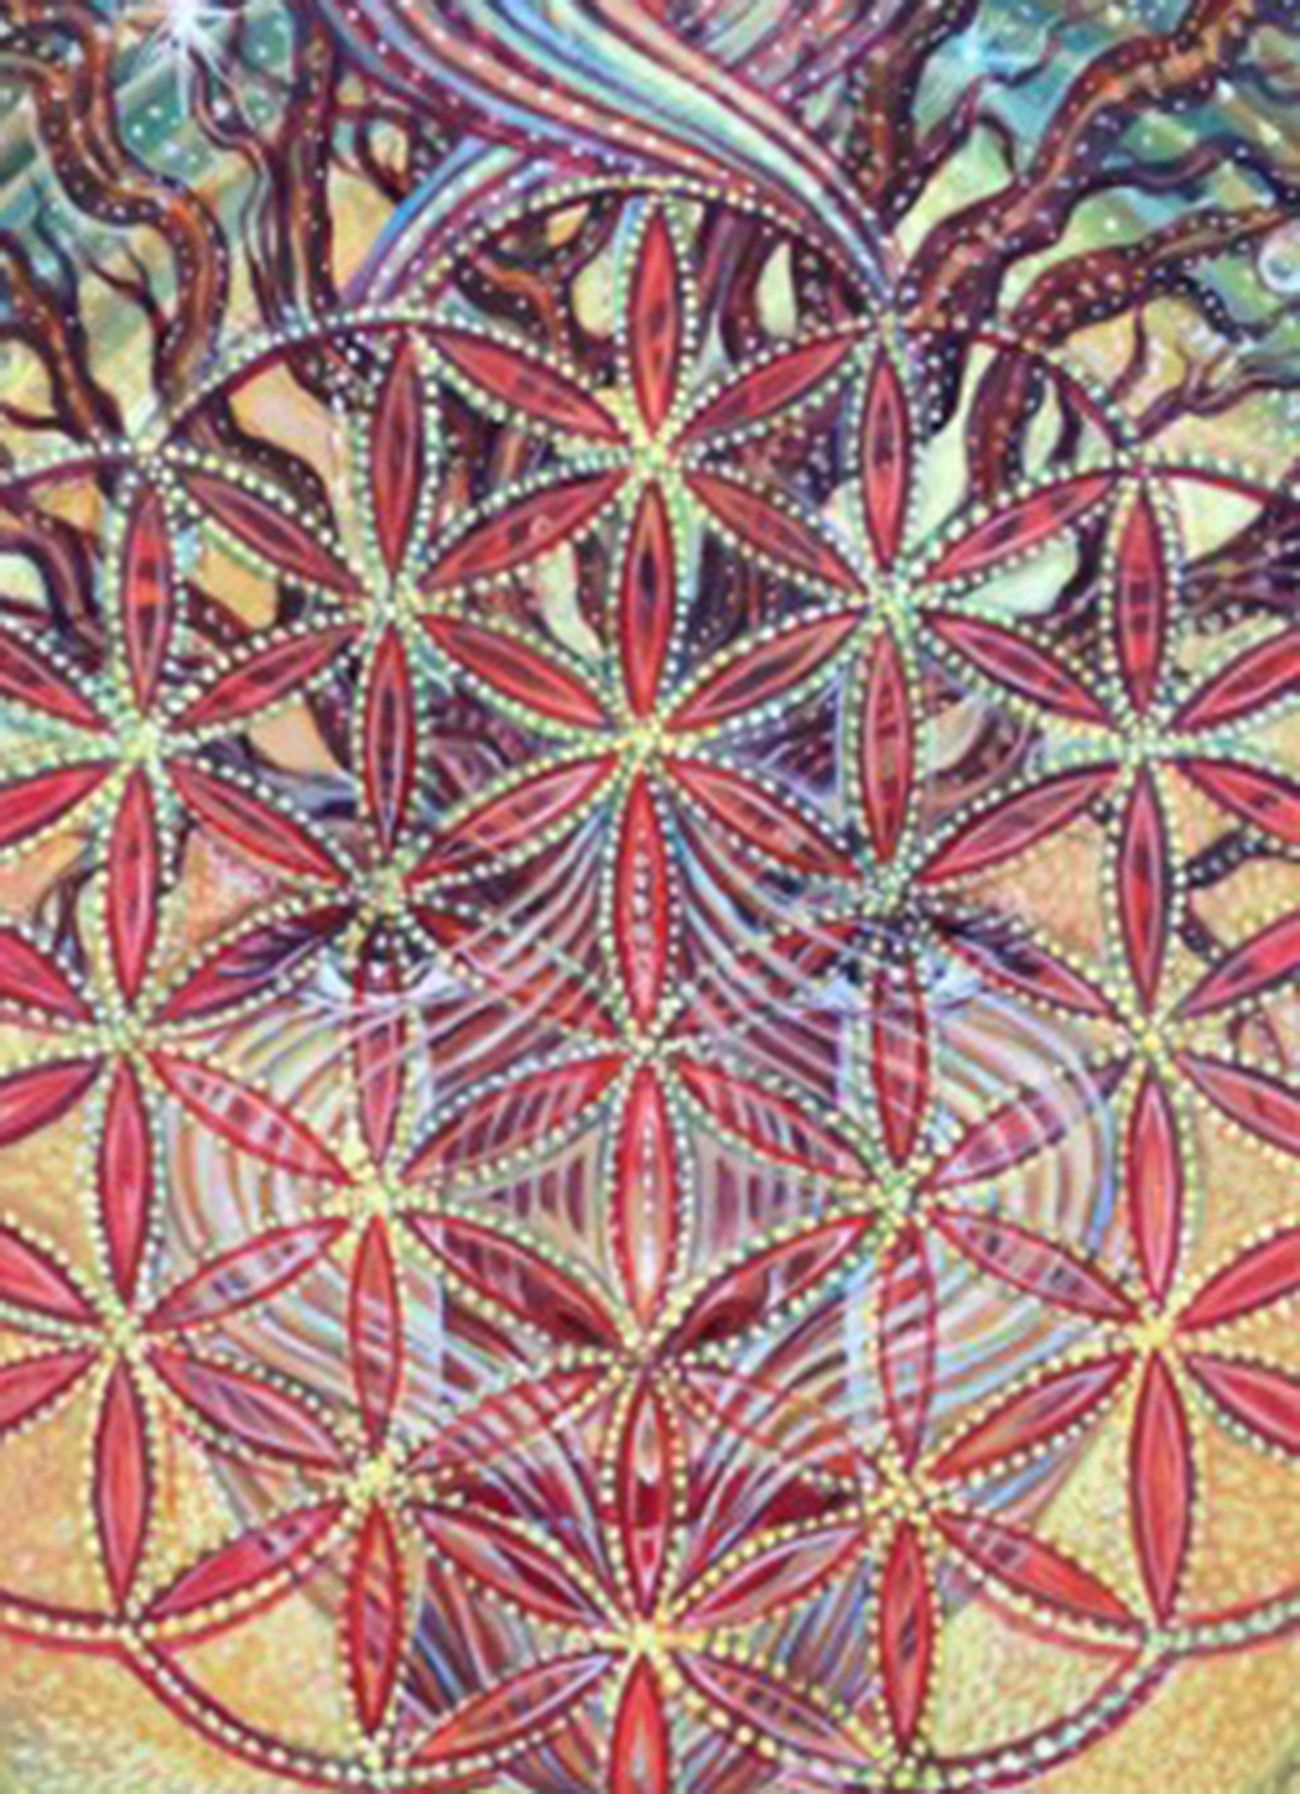 Flower of life flower of life giclee print limited